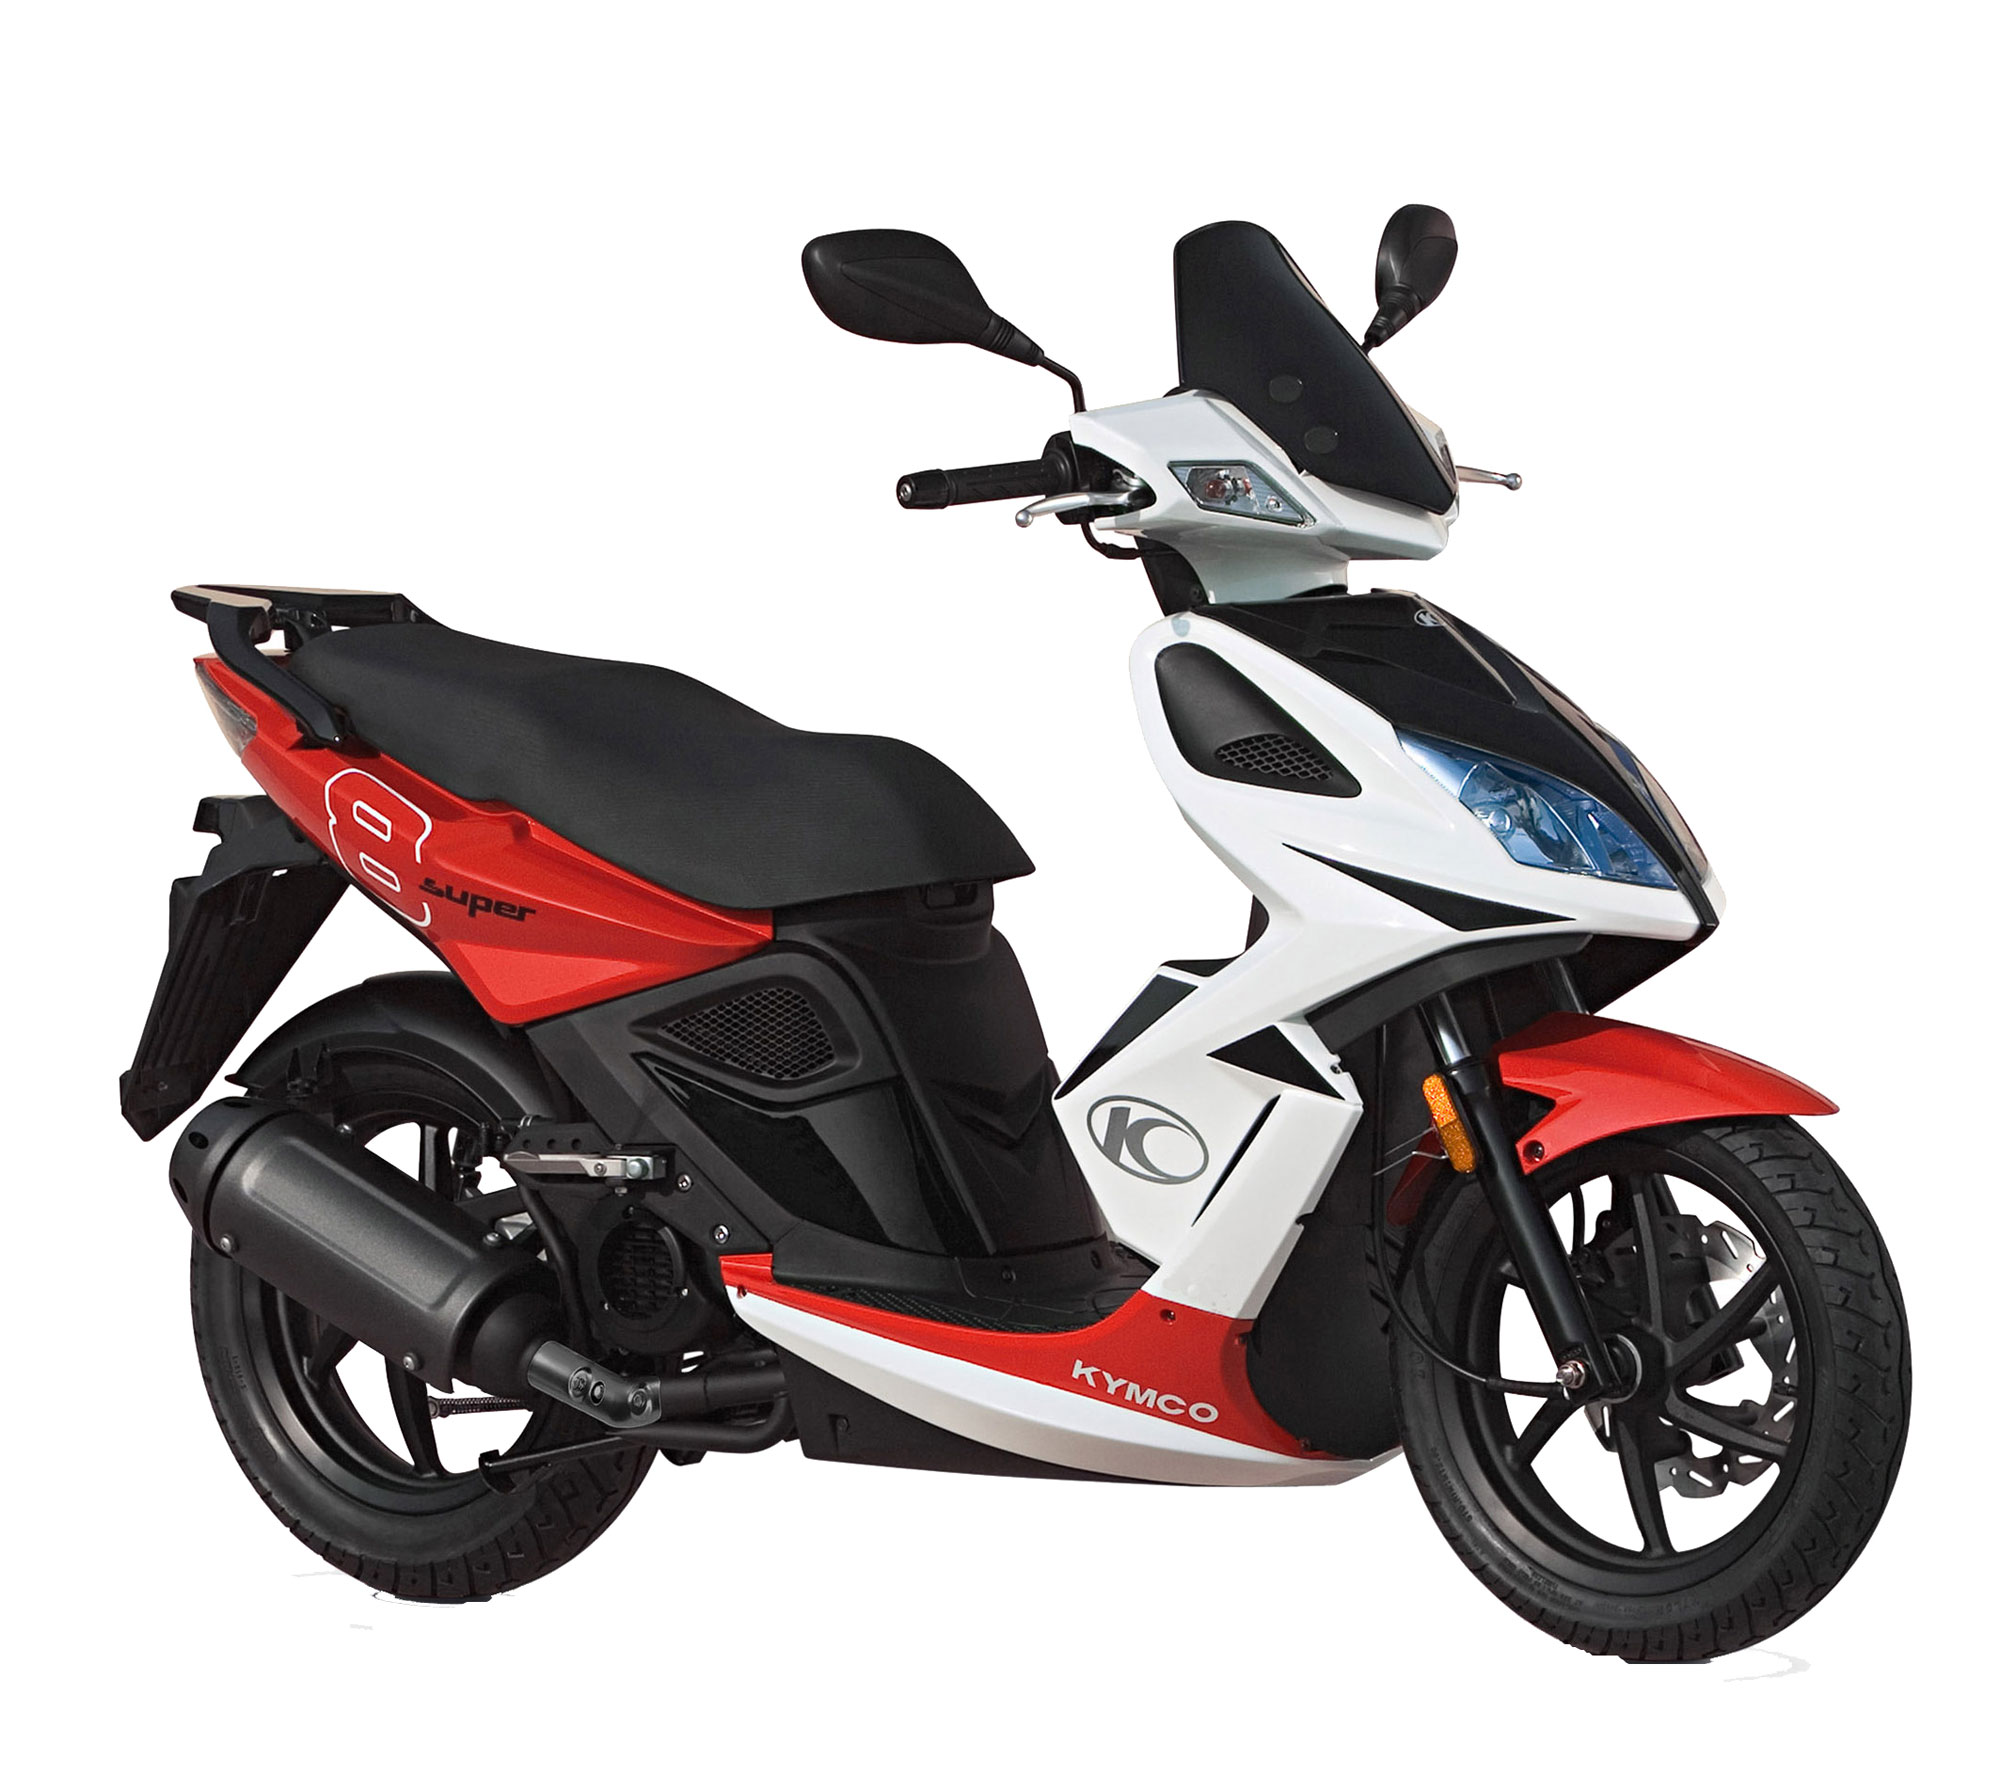 2012 kymco super 8 150 review top speed. Black Bedroom Furniture Sets. Home Design Ideas